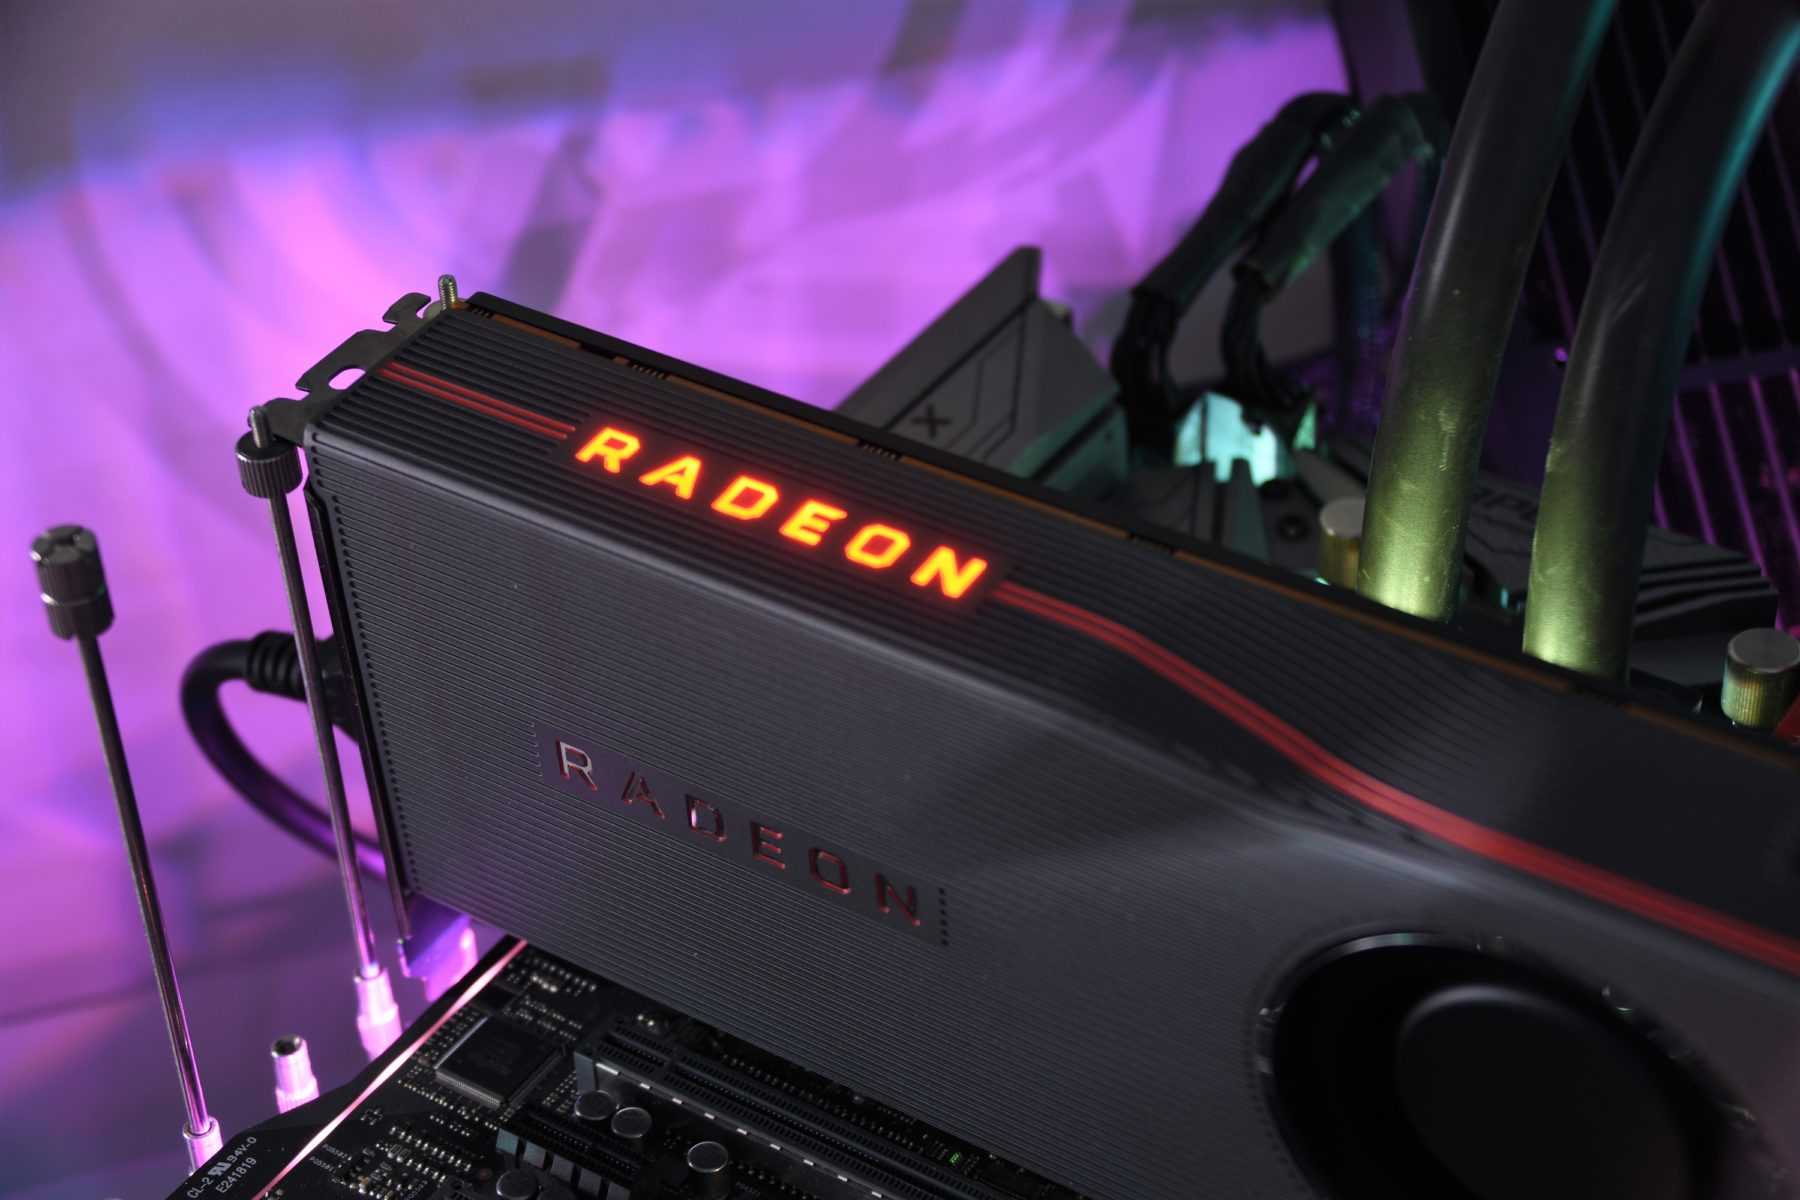 Review AMD Radeon RX 5700 XT and Radeon RX 5700 – Specs | Testing | Overclocking